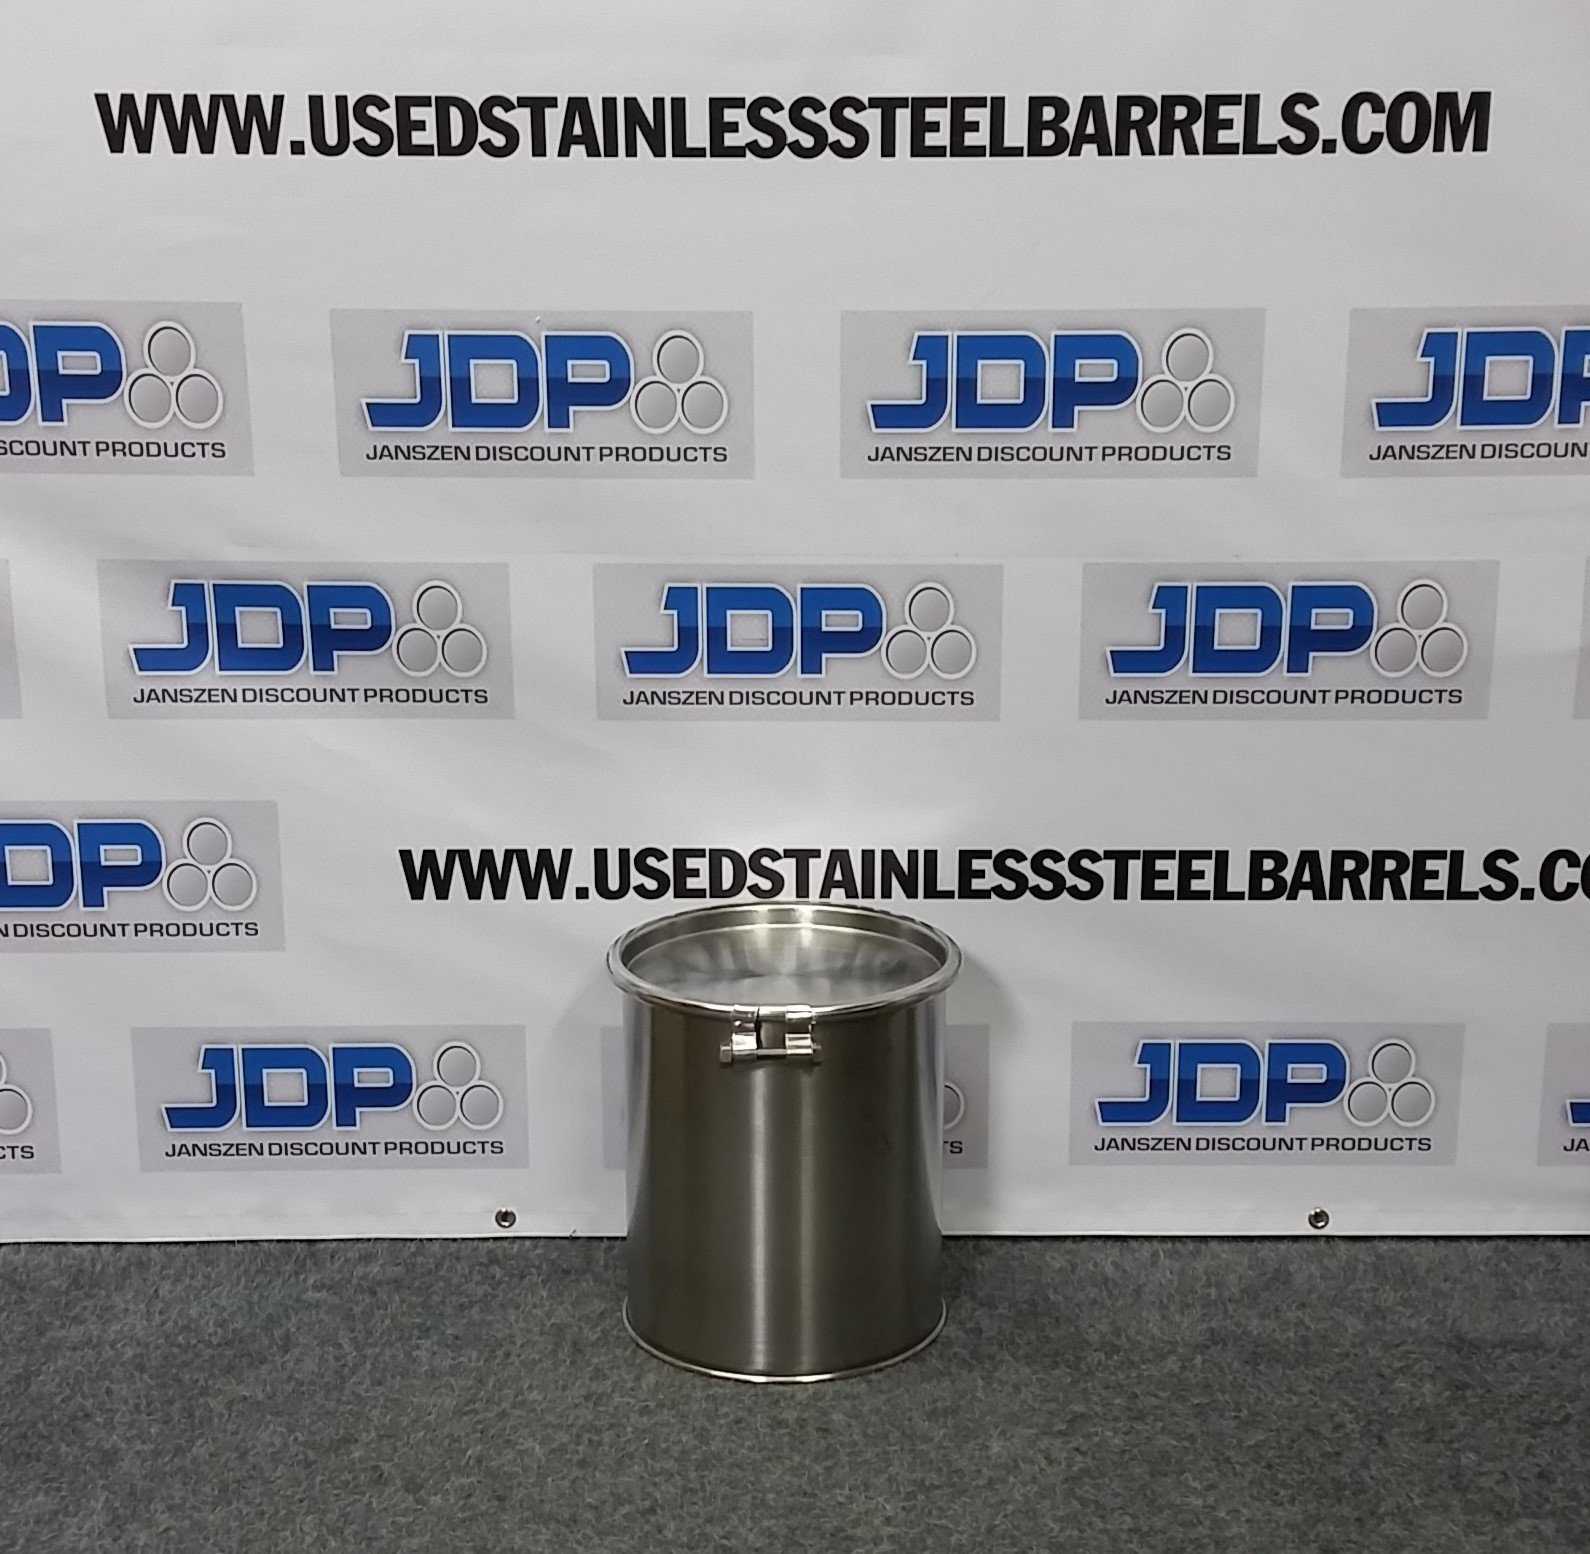 New 5 Gallon Stainless Steel Barrel Open Head 8 Mm